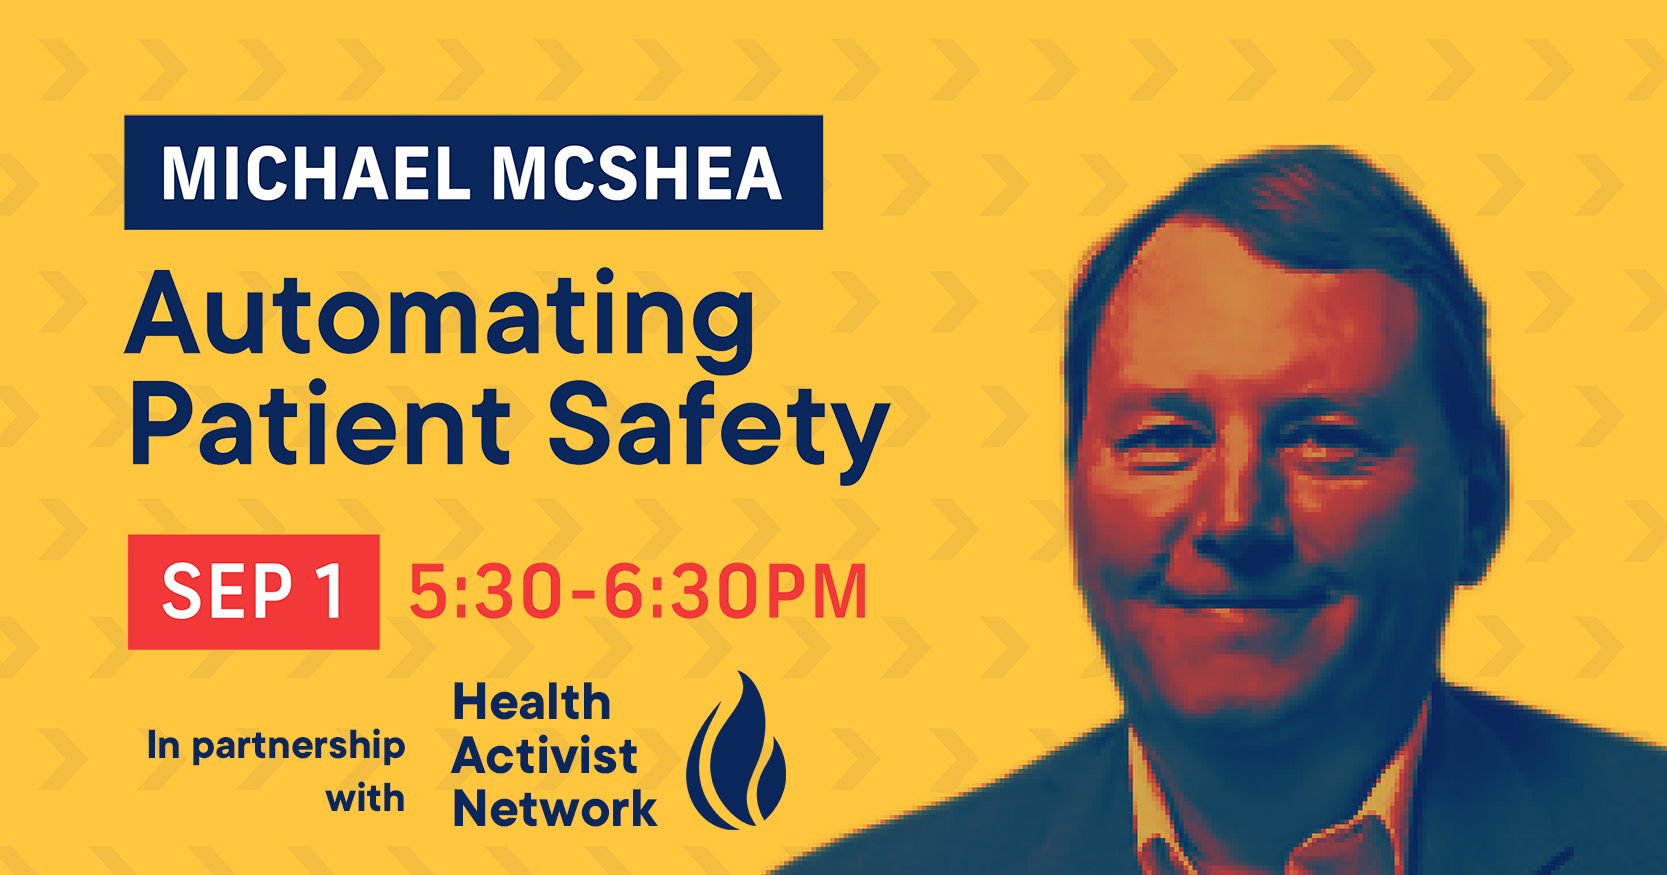 Automating Patient Safety with Michael McShea on Sept 1 Icon Image